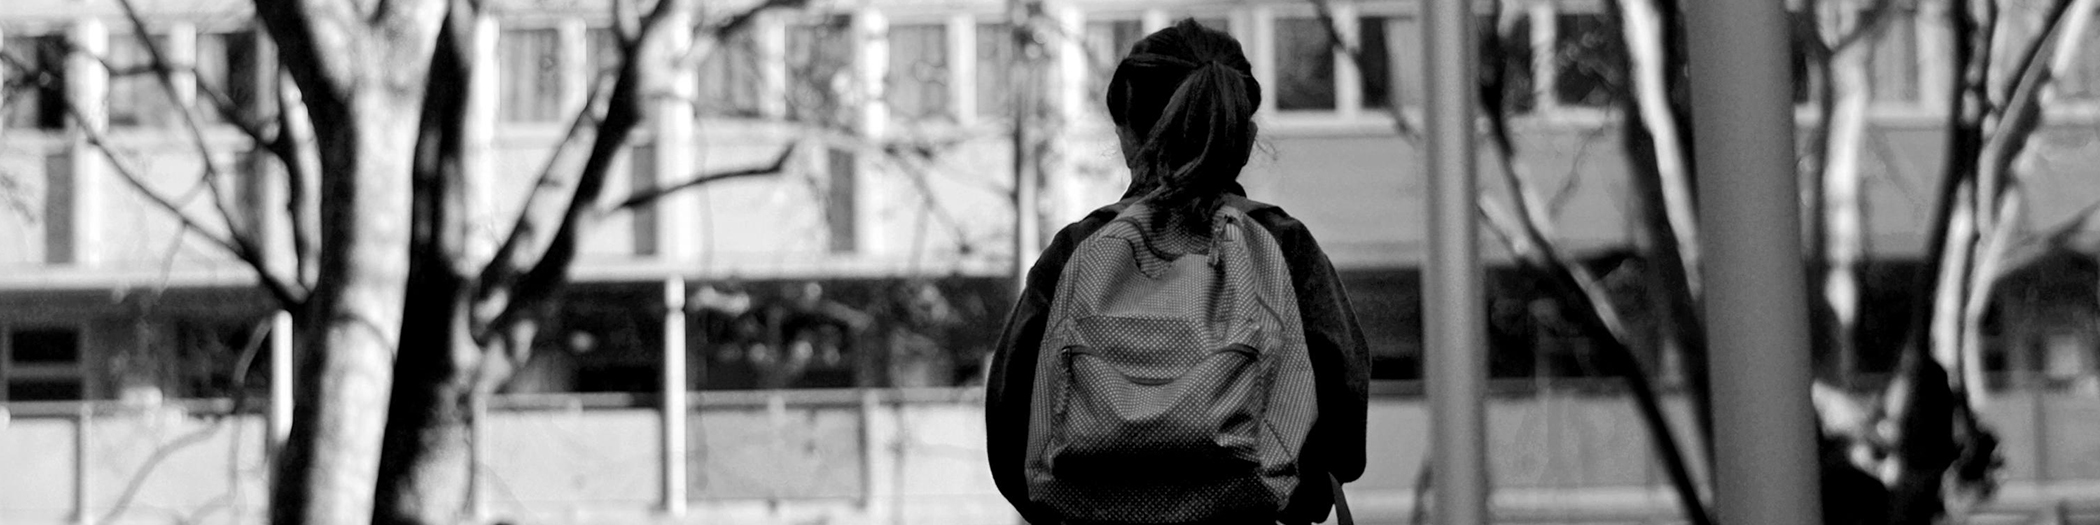 Black and white girl with backpack